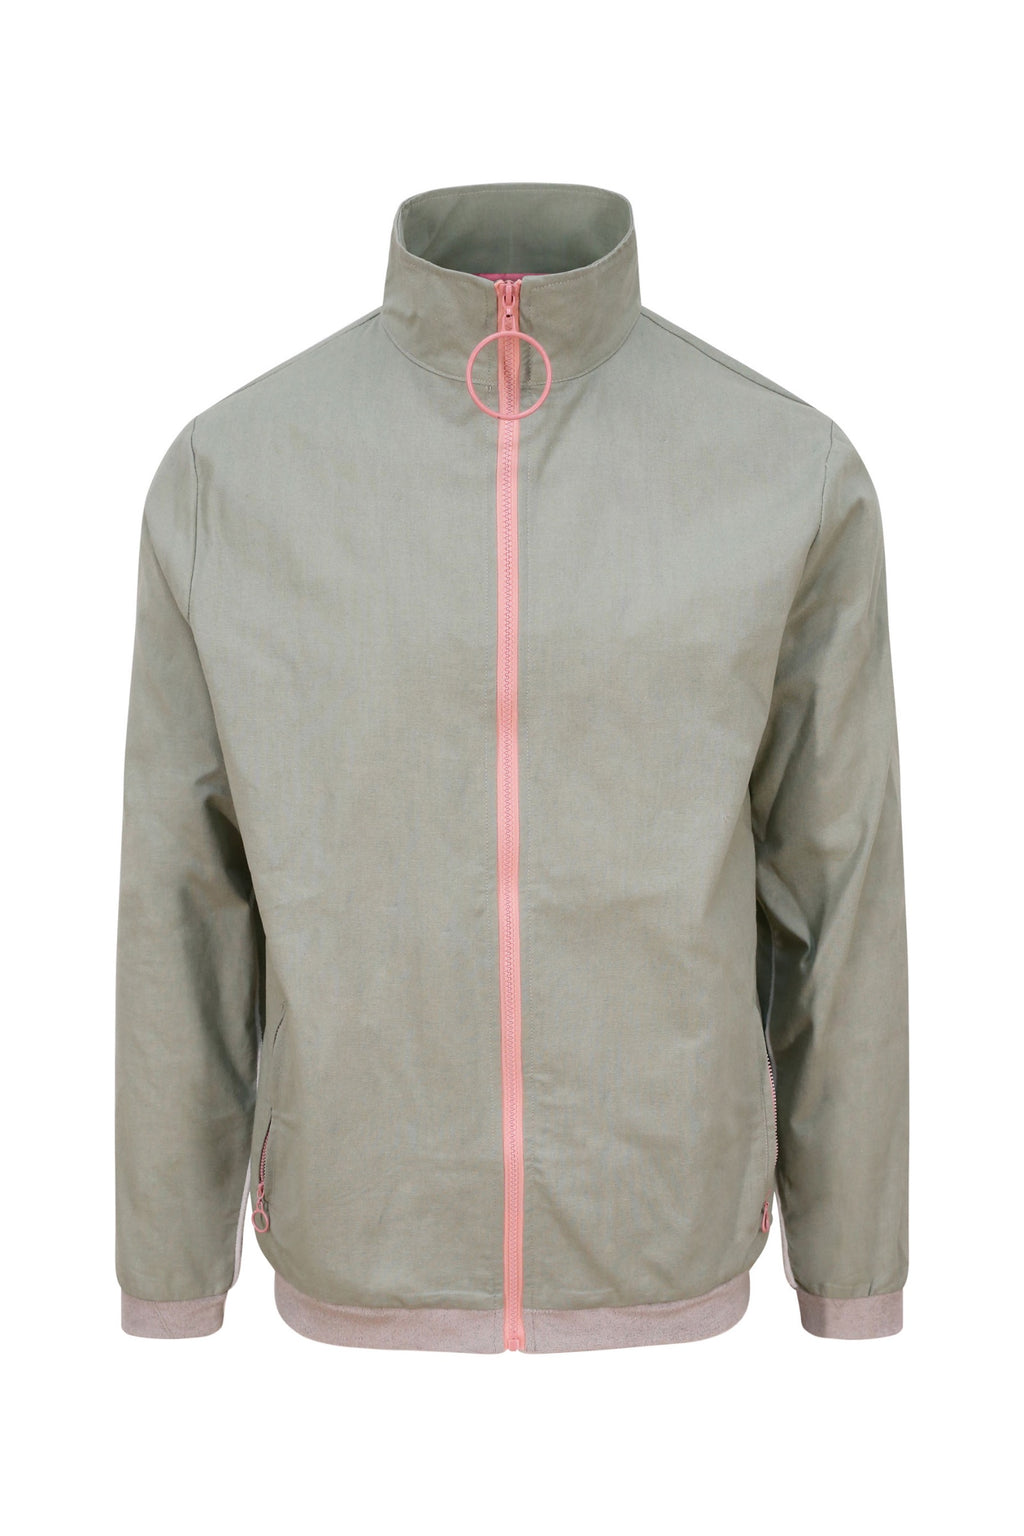 Unisex Grey Loop Zip Front Jacket